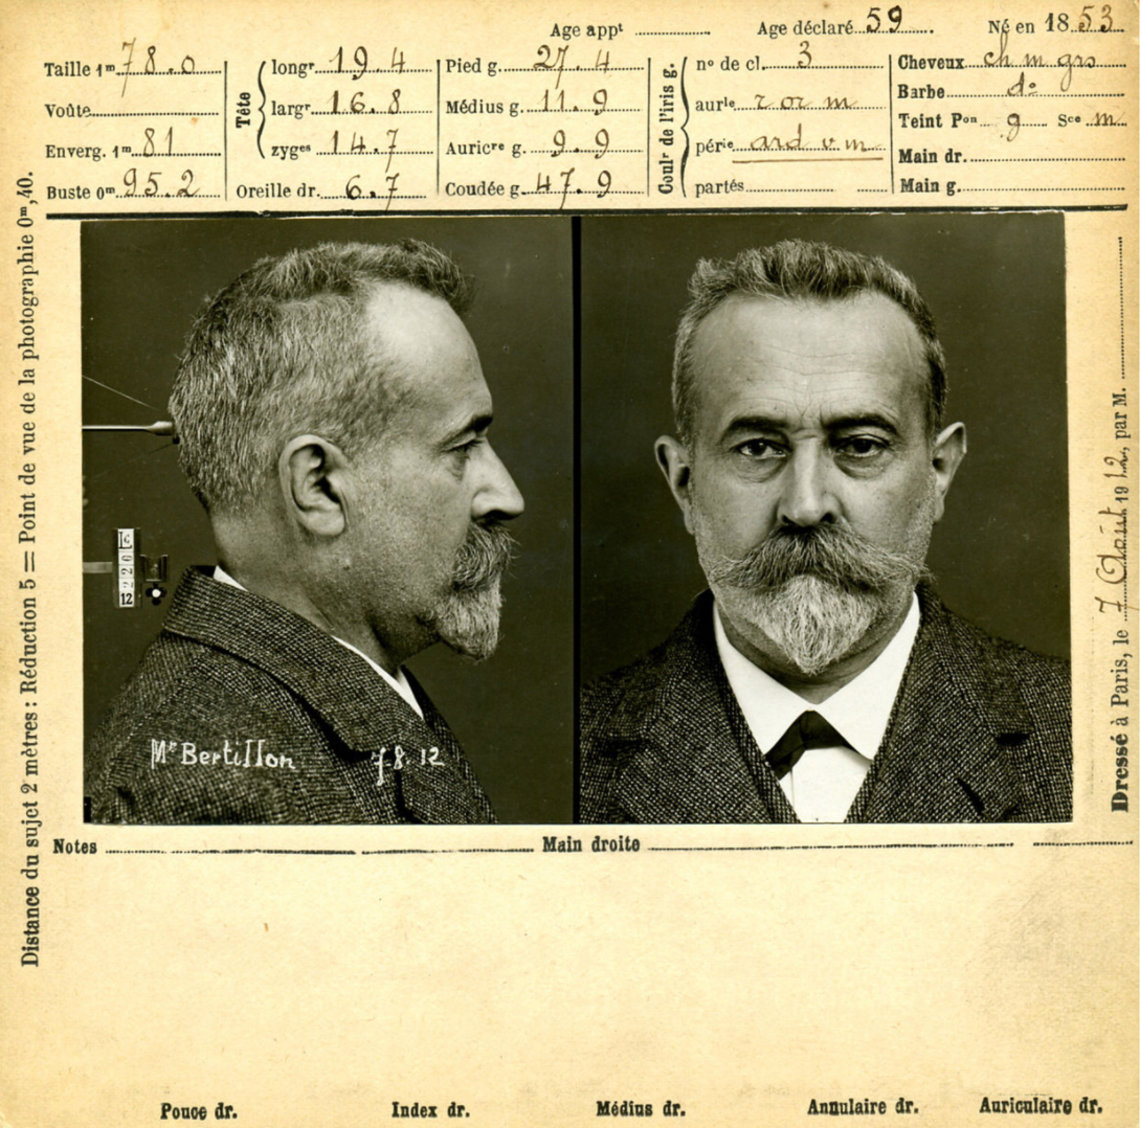 Alphonse Bertillon, a criminologist, developed the modern booking photograph — one frontal shot, one profile, in the late 19th century.